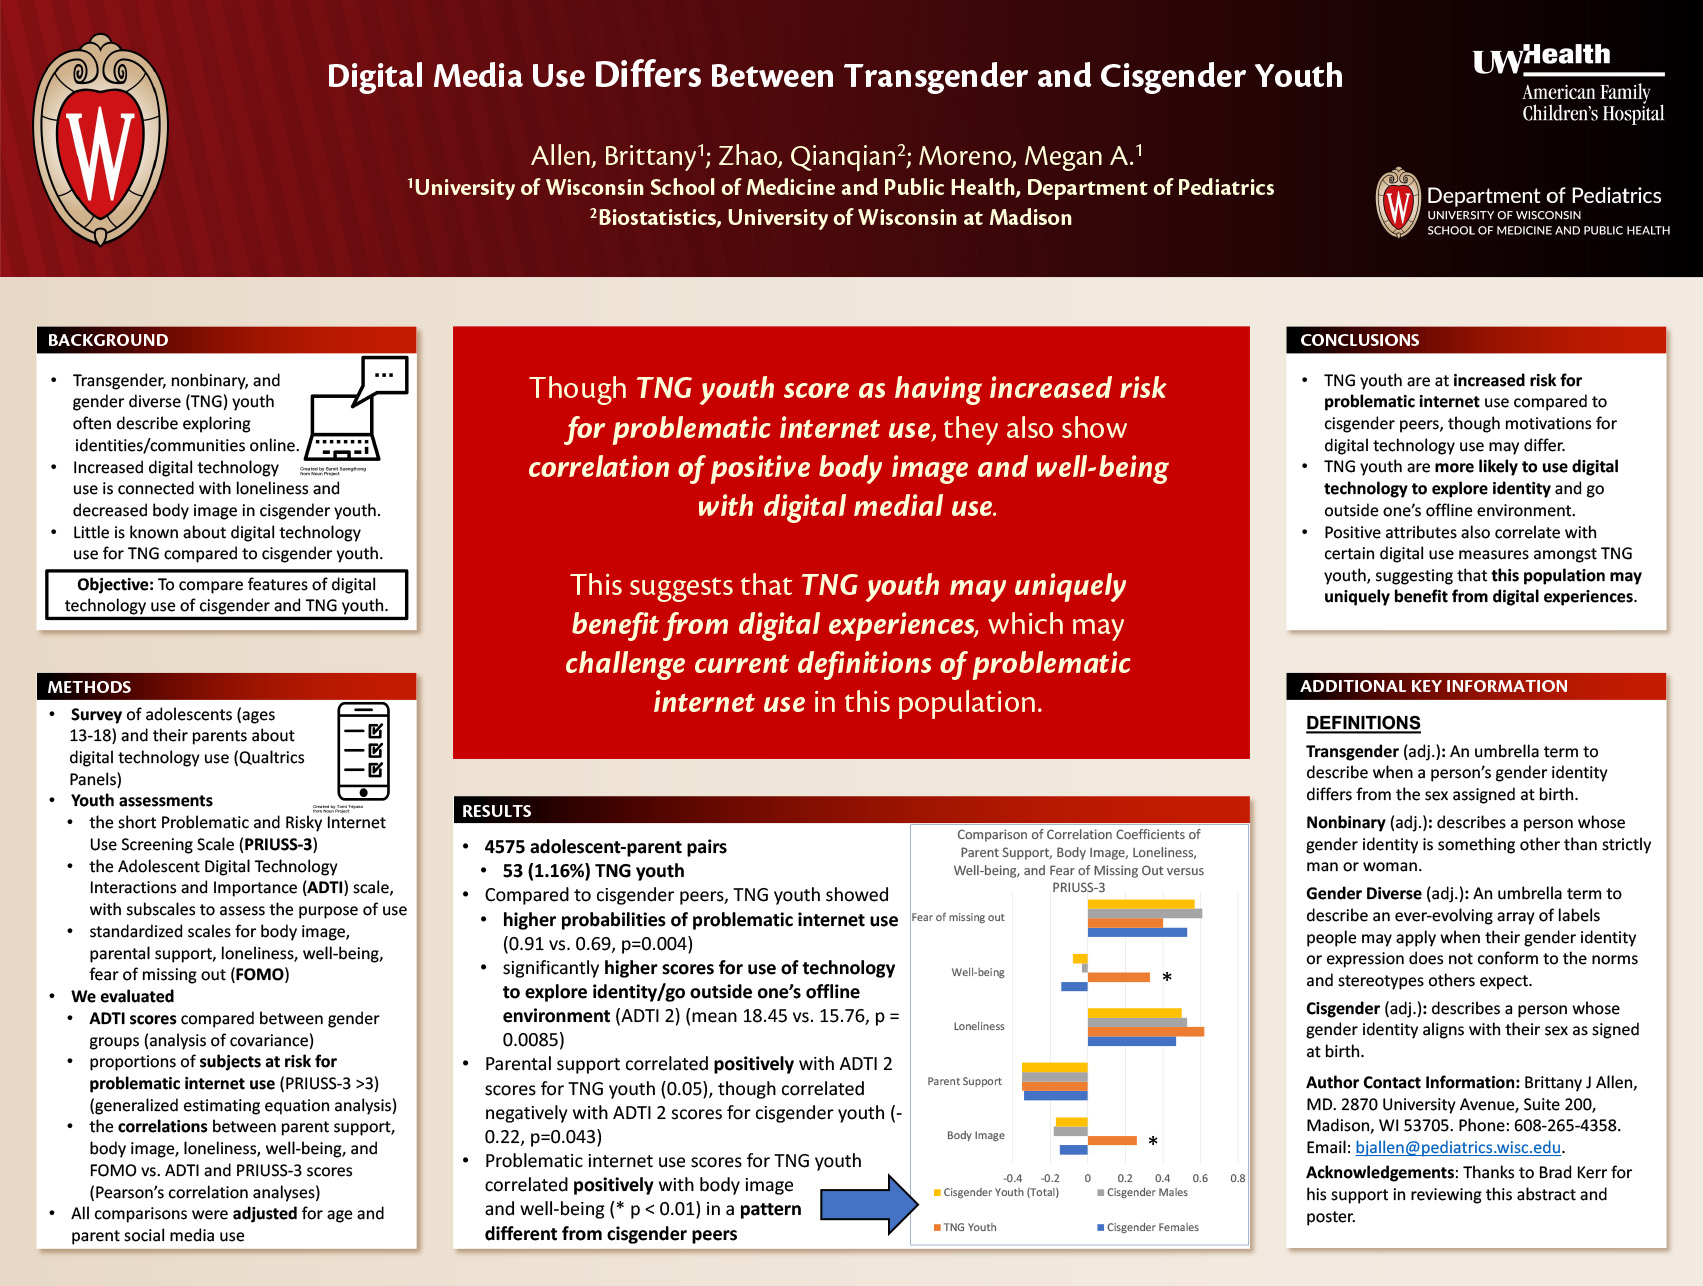 Digital Media Use Differs Between Transgender/Nonbinary Youth and Cisgender Peers poster image